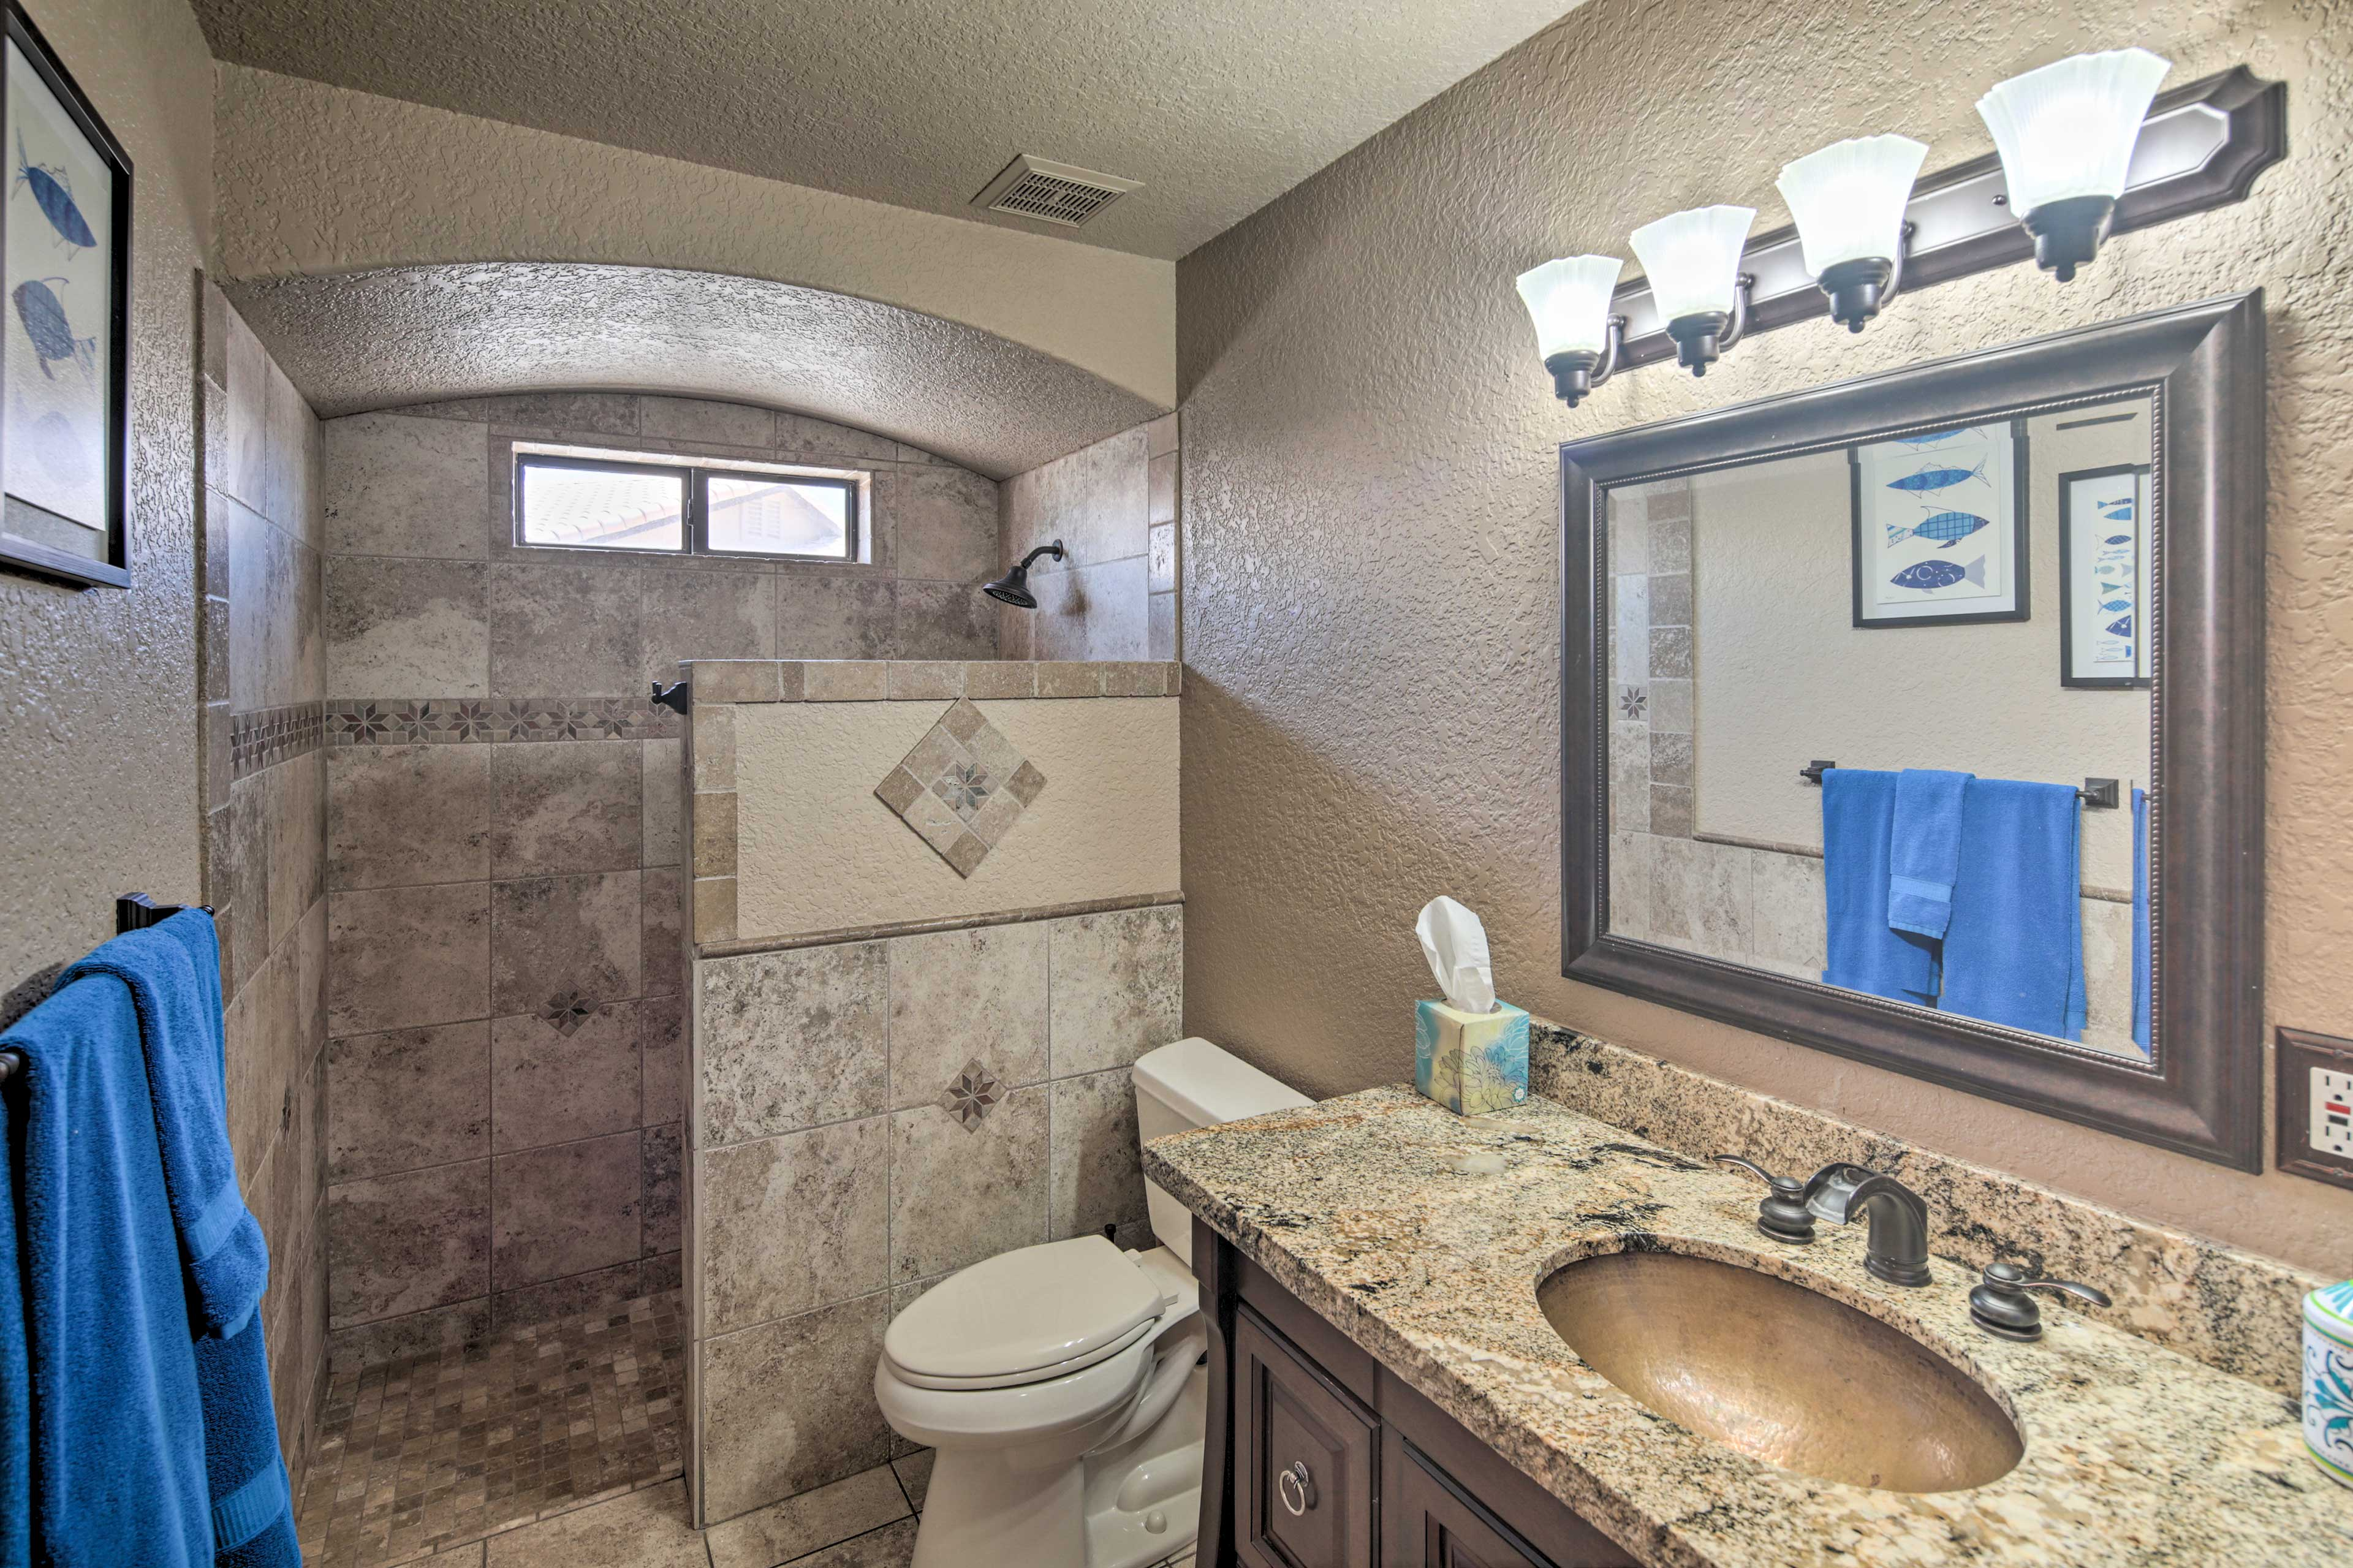 The grand second bathroom also boasts a walk-in shower.